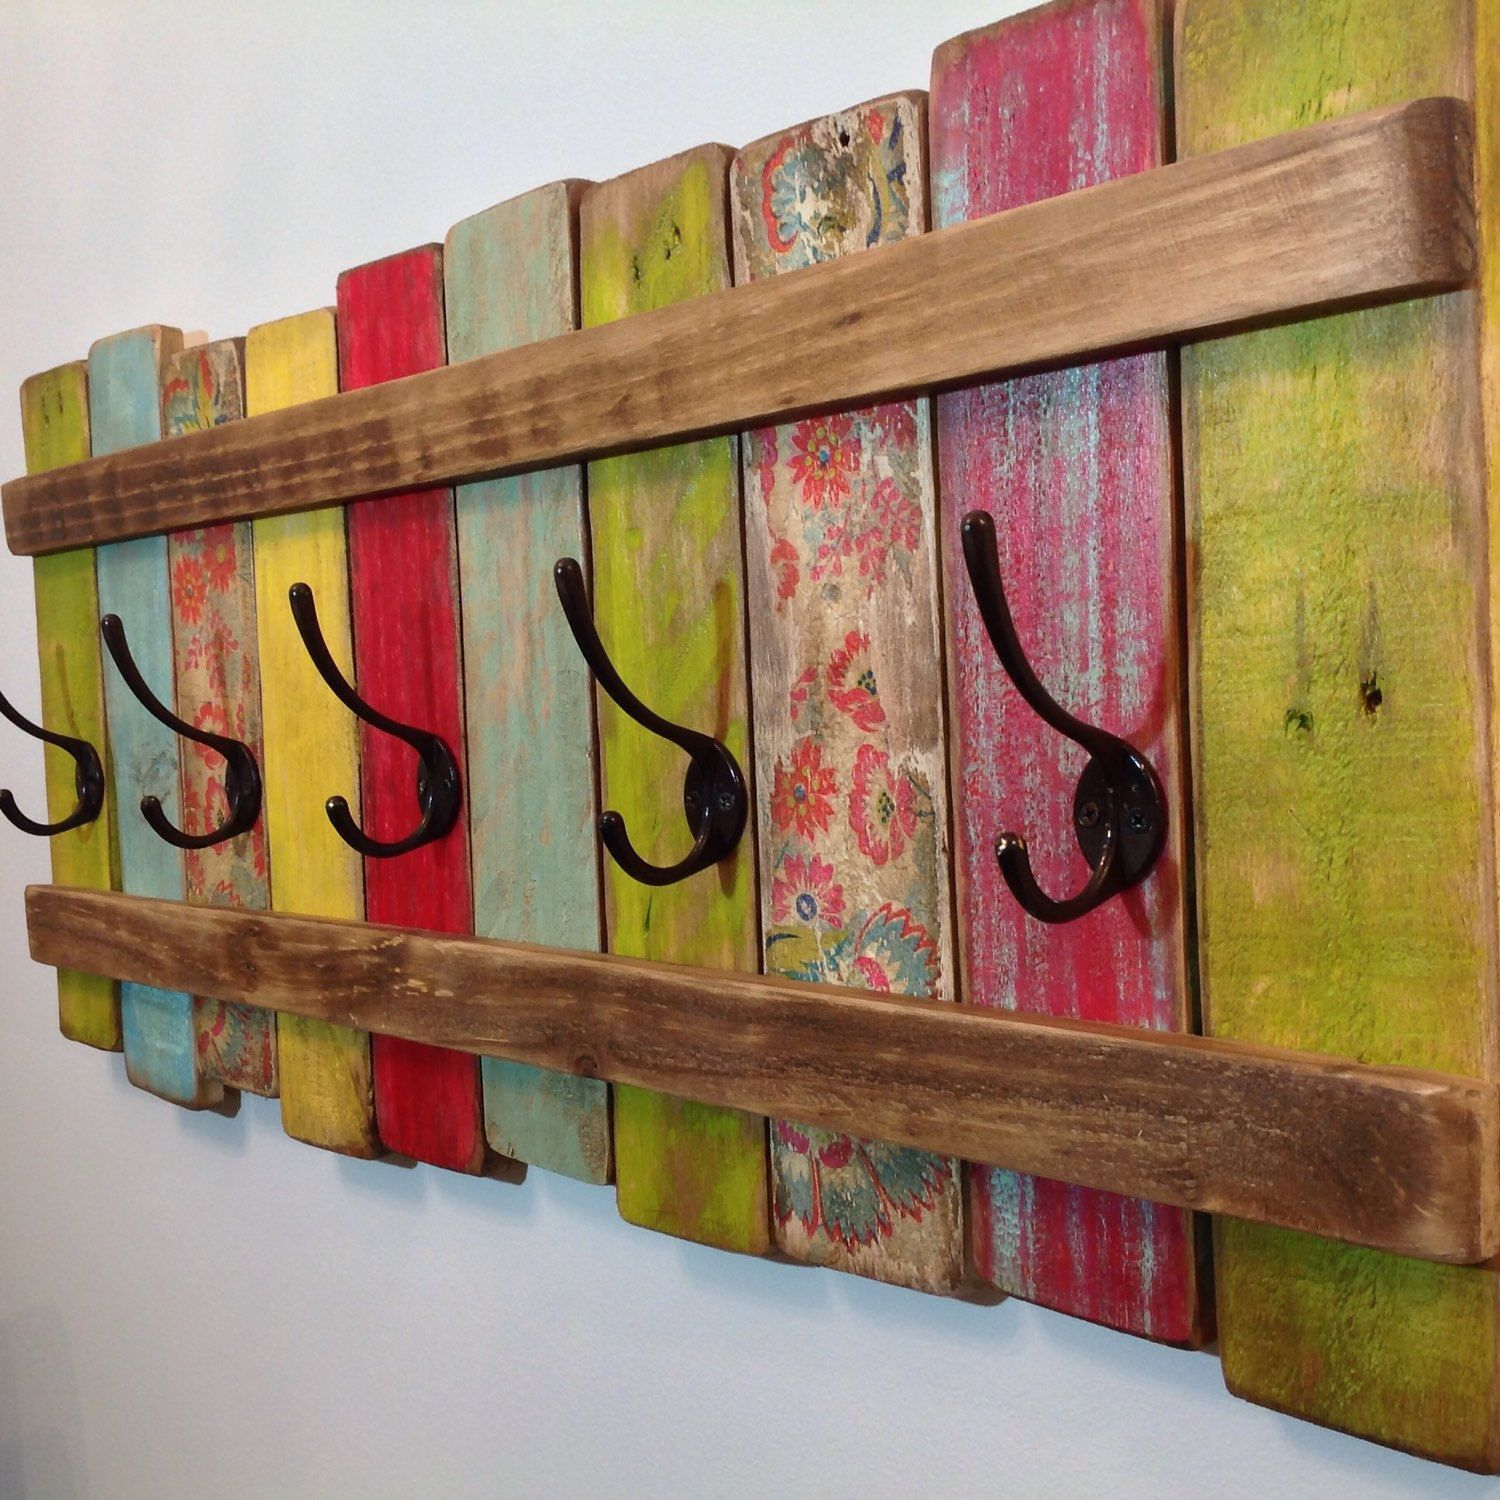 Wood Coat Rack Entryway Organizer Towel Rack Key Hooks Wall Mounted Coat Rack Catch All Leash Holder Rustic Modern Unique Add Good Vibes Pallet Crafts Wood Crafts Bohemian Furniture